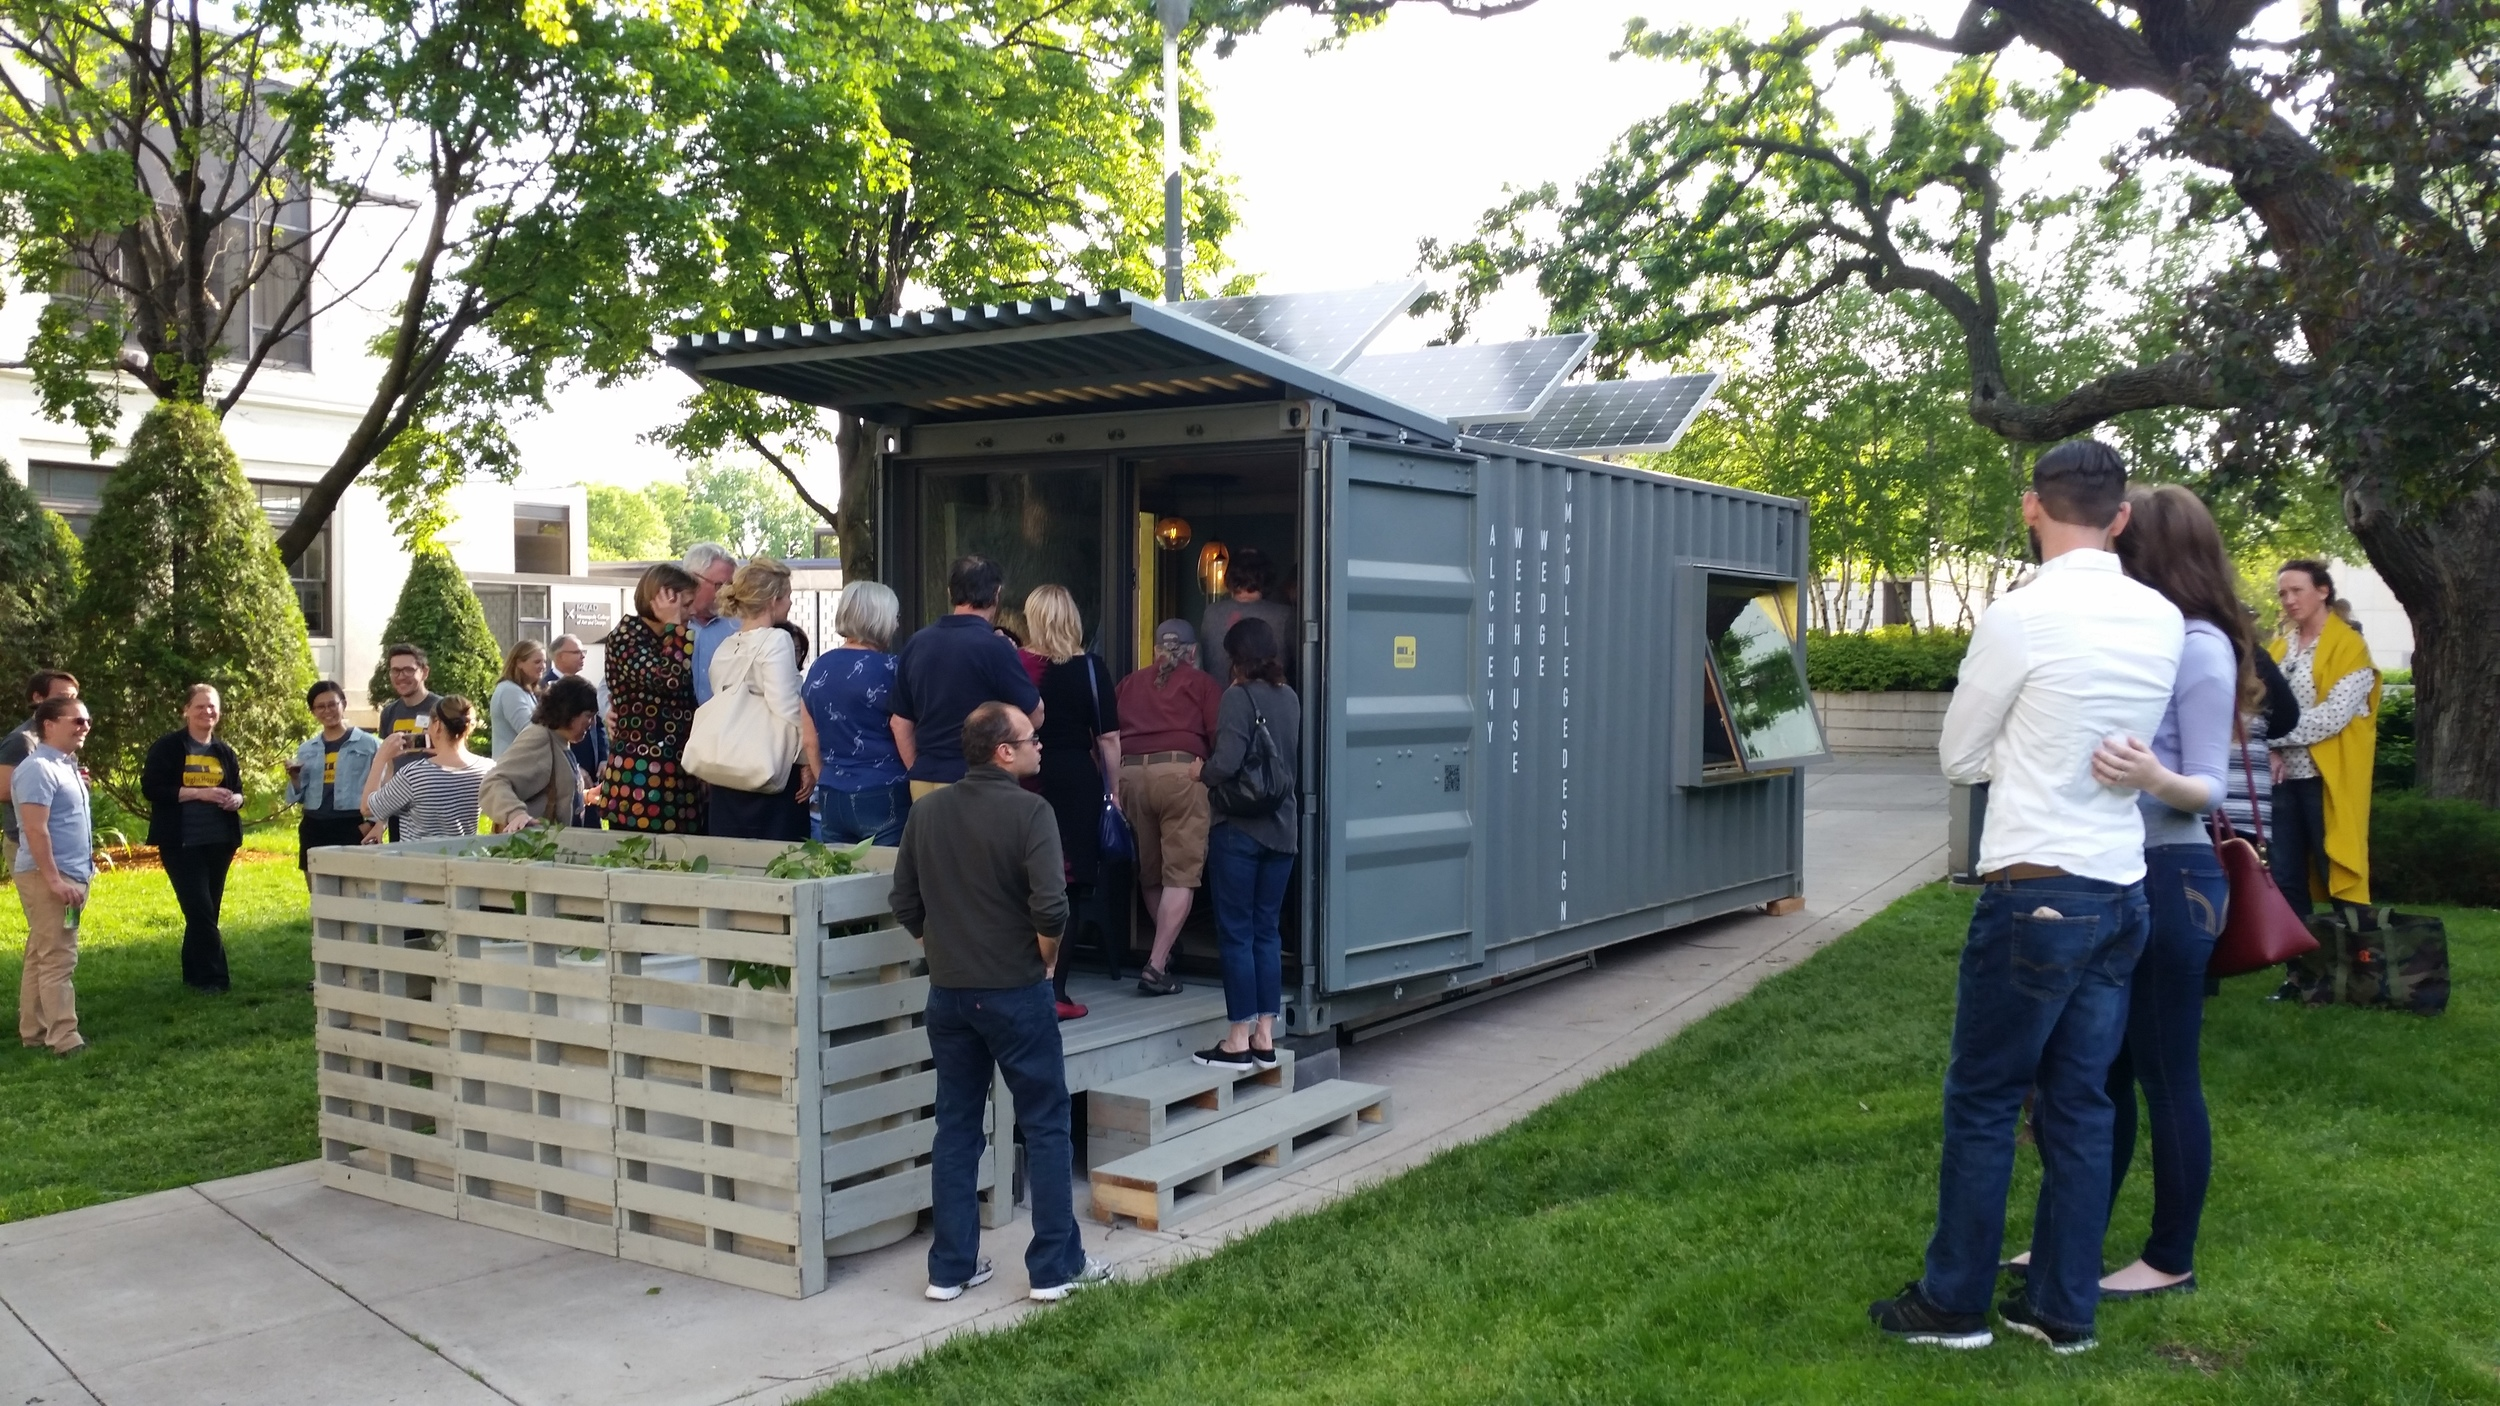 LIGHTHOUSE (a 20's container hotel room) was featured at the Minneapolis Institute of Arts' Third Thursday series on sustainability.